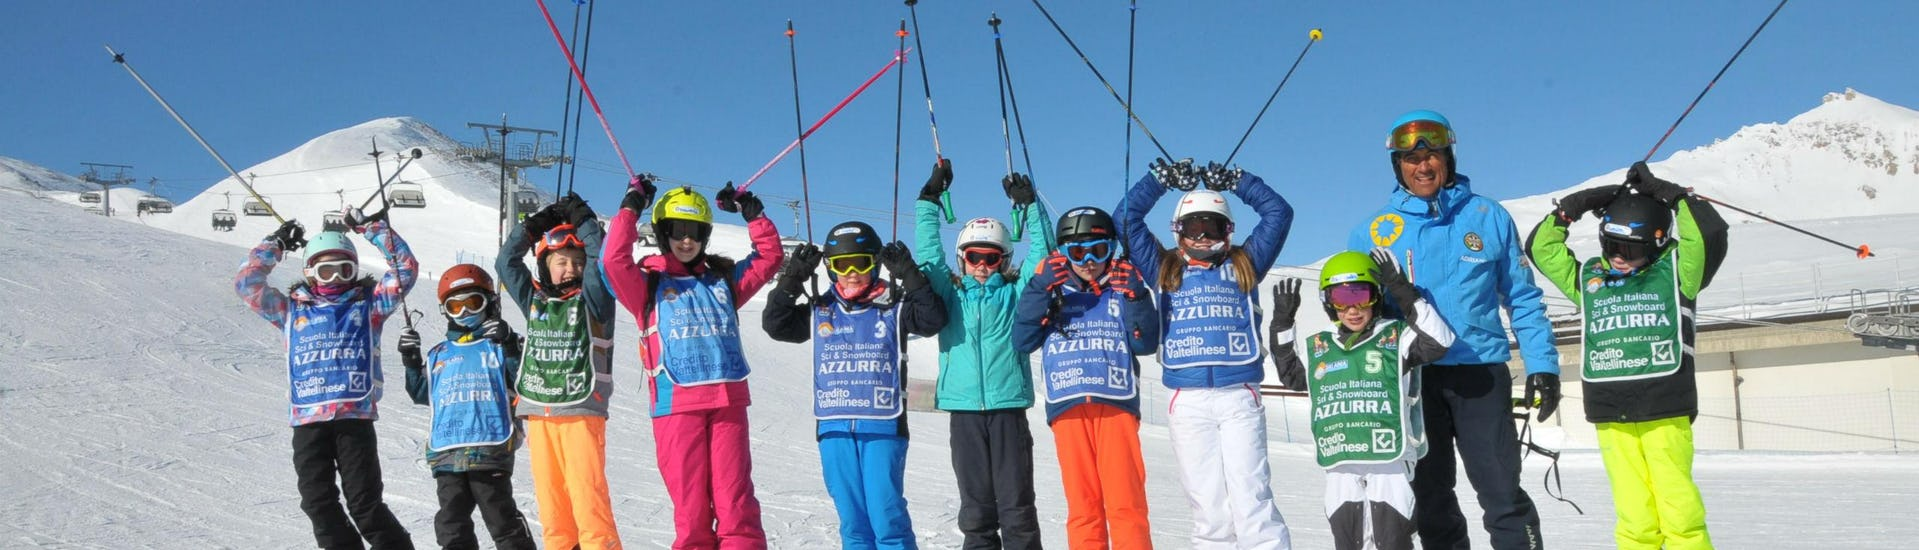 A group of children is enjoying their Kids Ski Lessons (4-14 y.) - Half Day - First Timer with the ski school Scuola di Sci Azzurra Livigno on the ski slopes of Livigno.